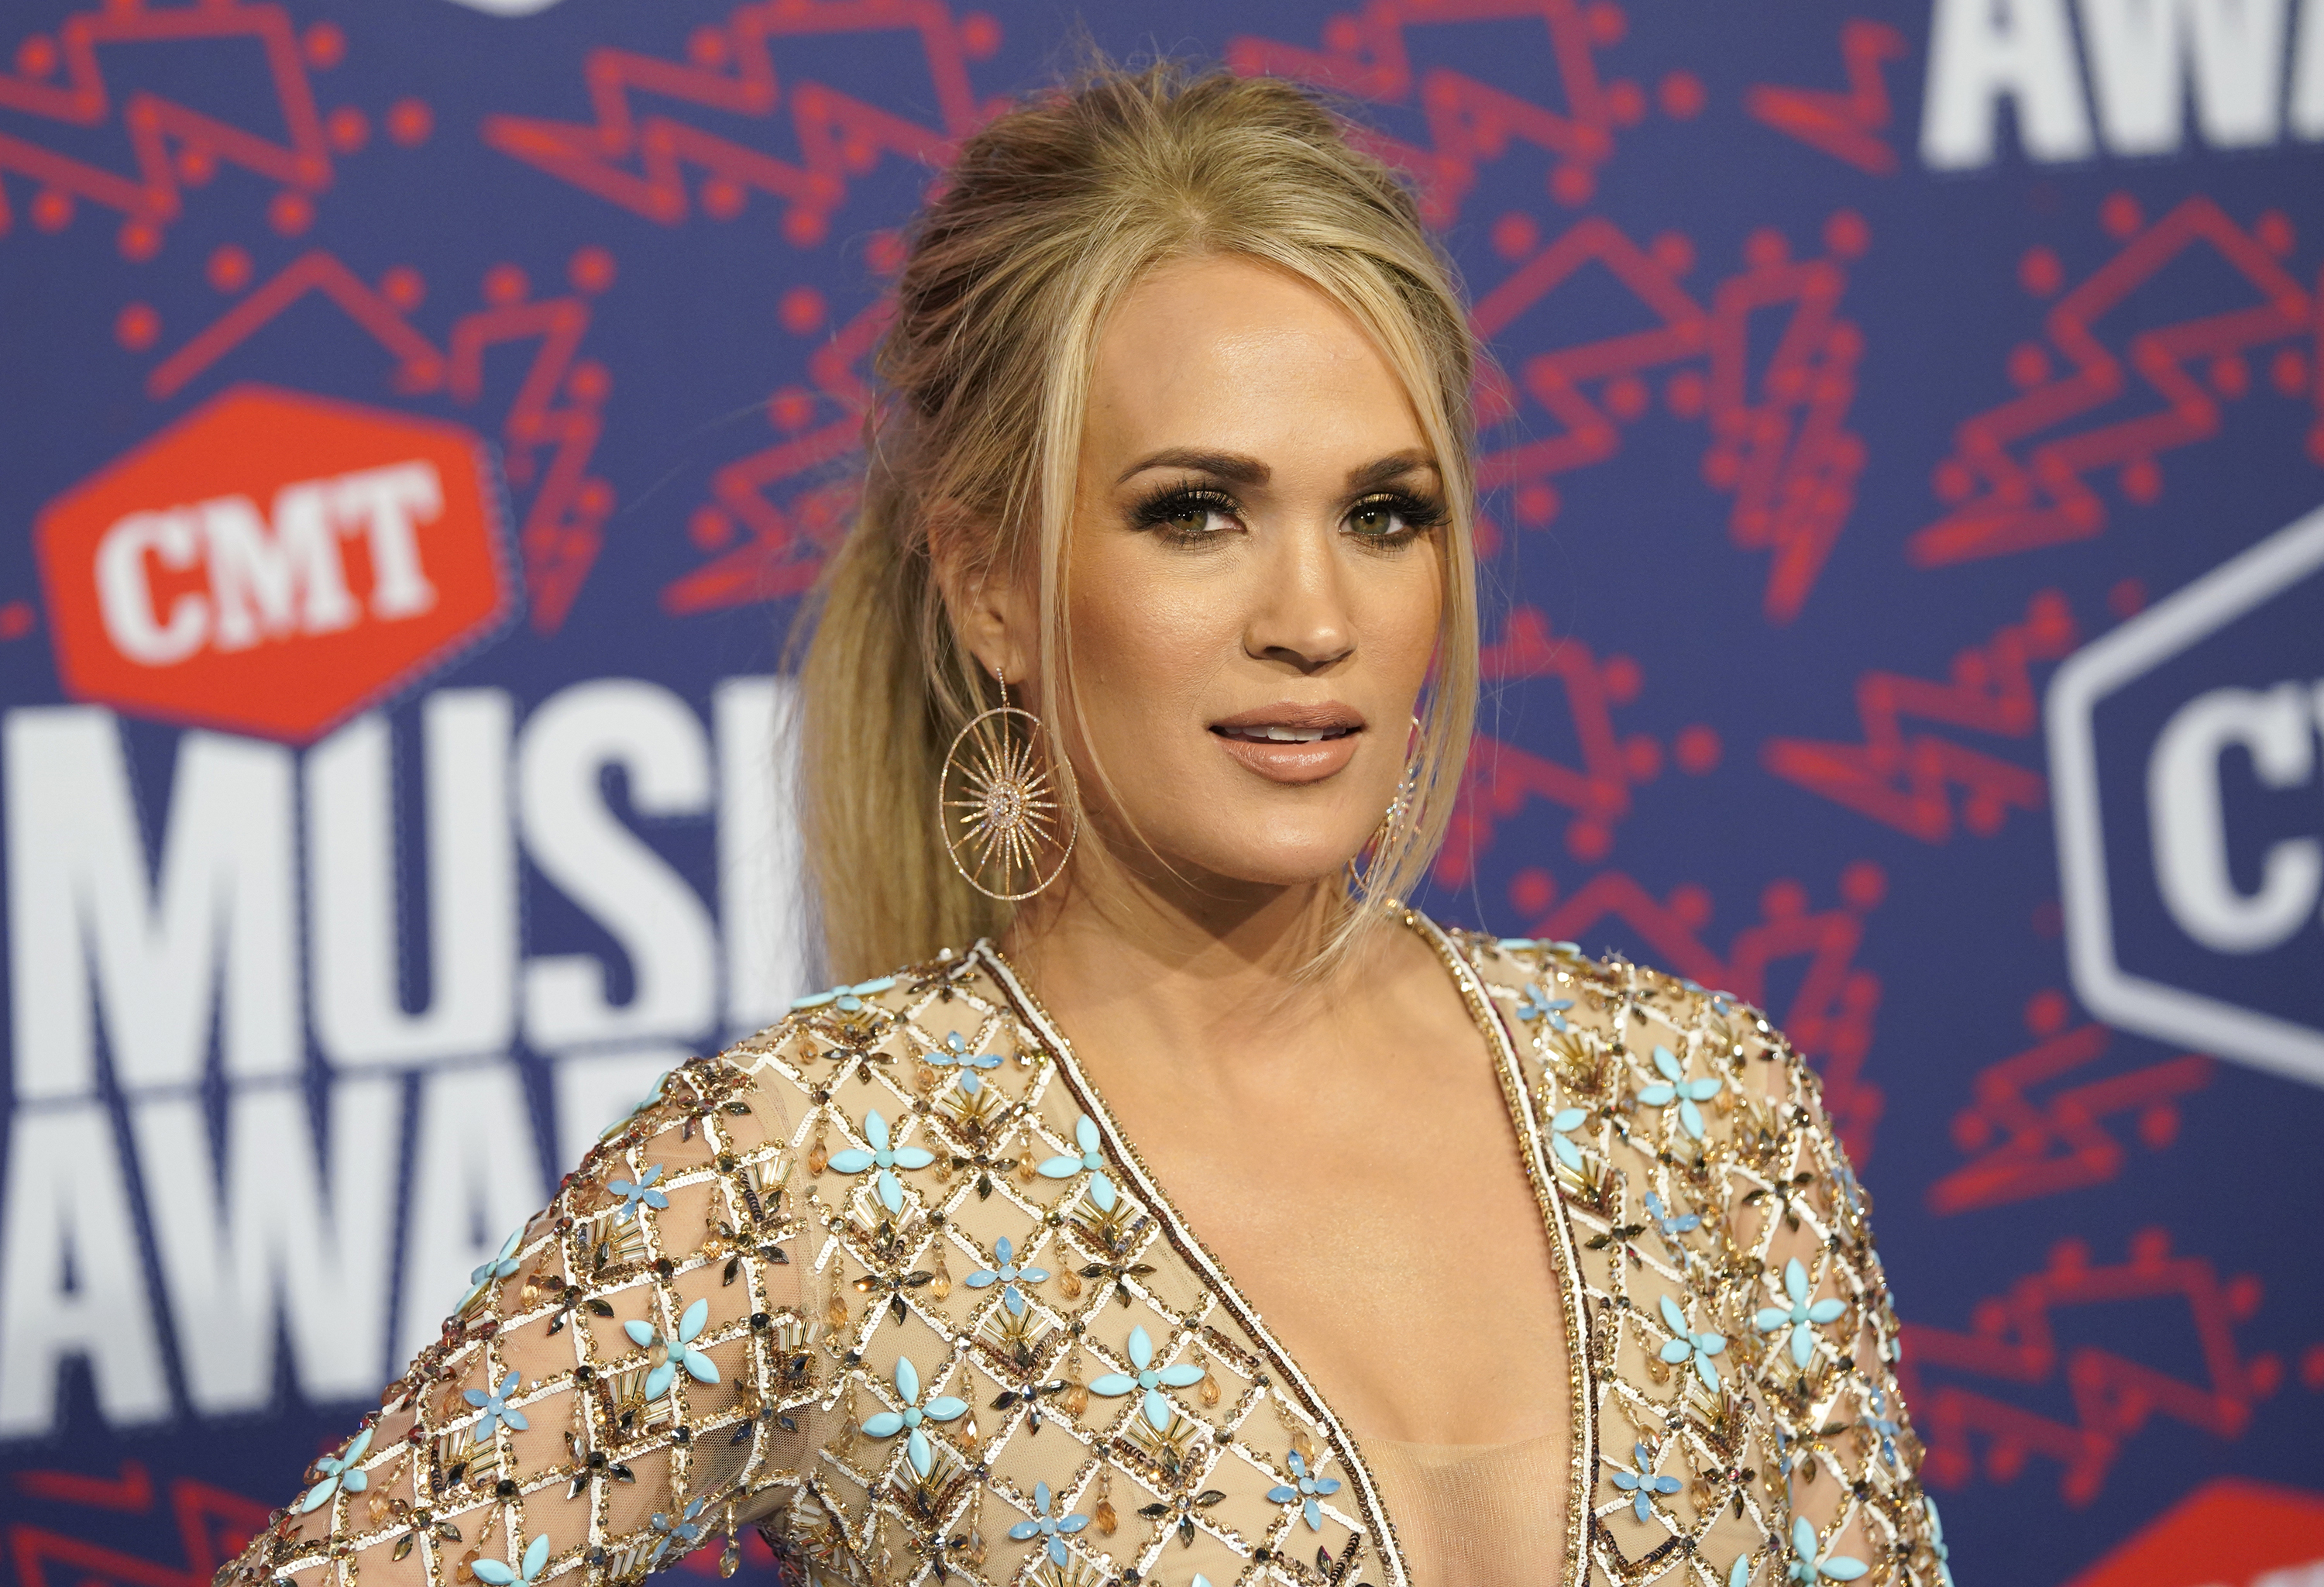 Carrie Underwood reveals the one condition she has for an 'American Idol' reunion